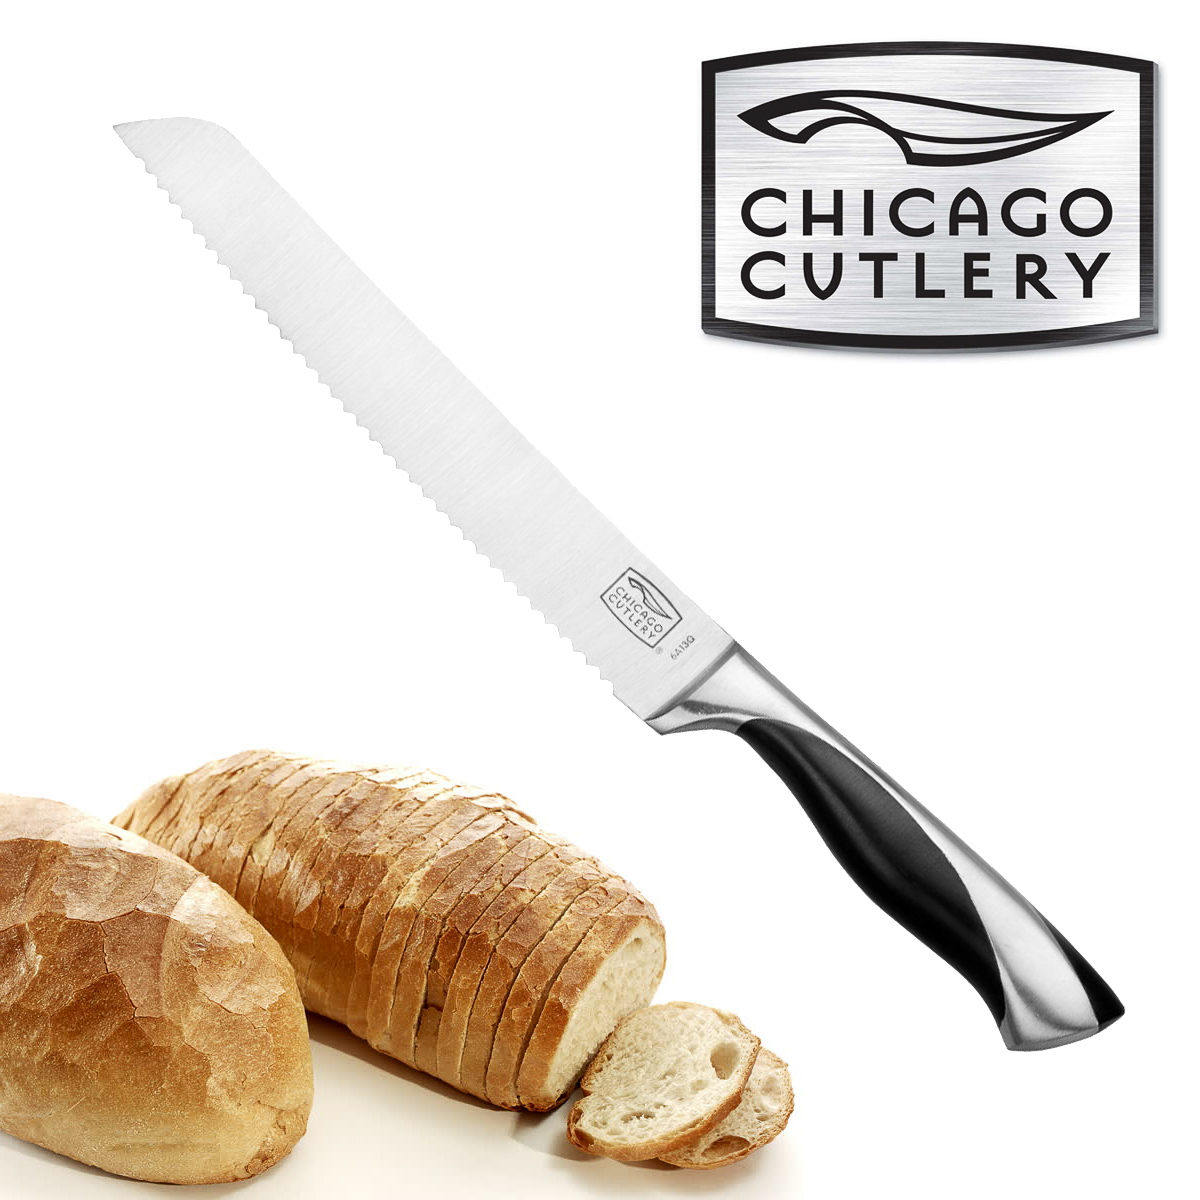 "Chicago Cutlery 8"" Bread Knife Stainless Steel Serrated Polymer Handle Holster by World Kitchen"